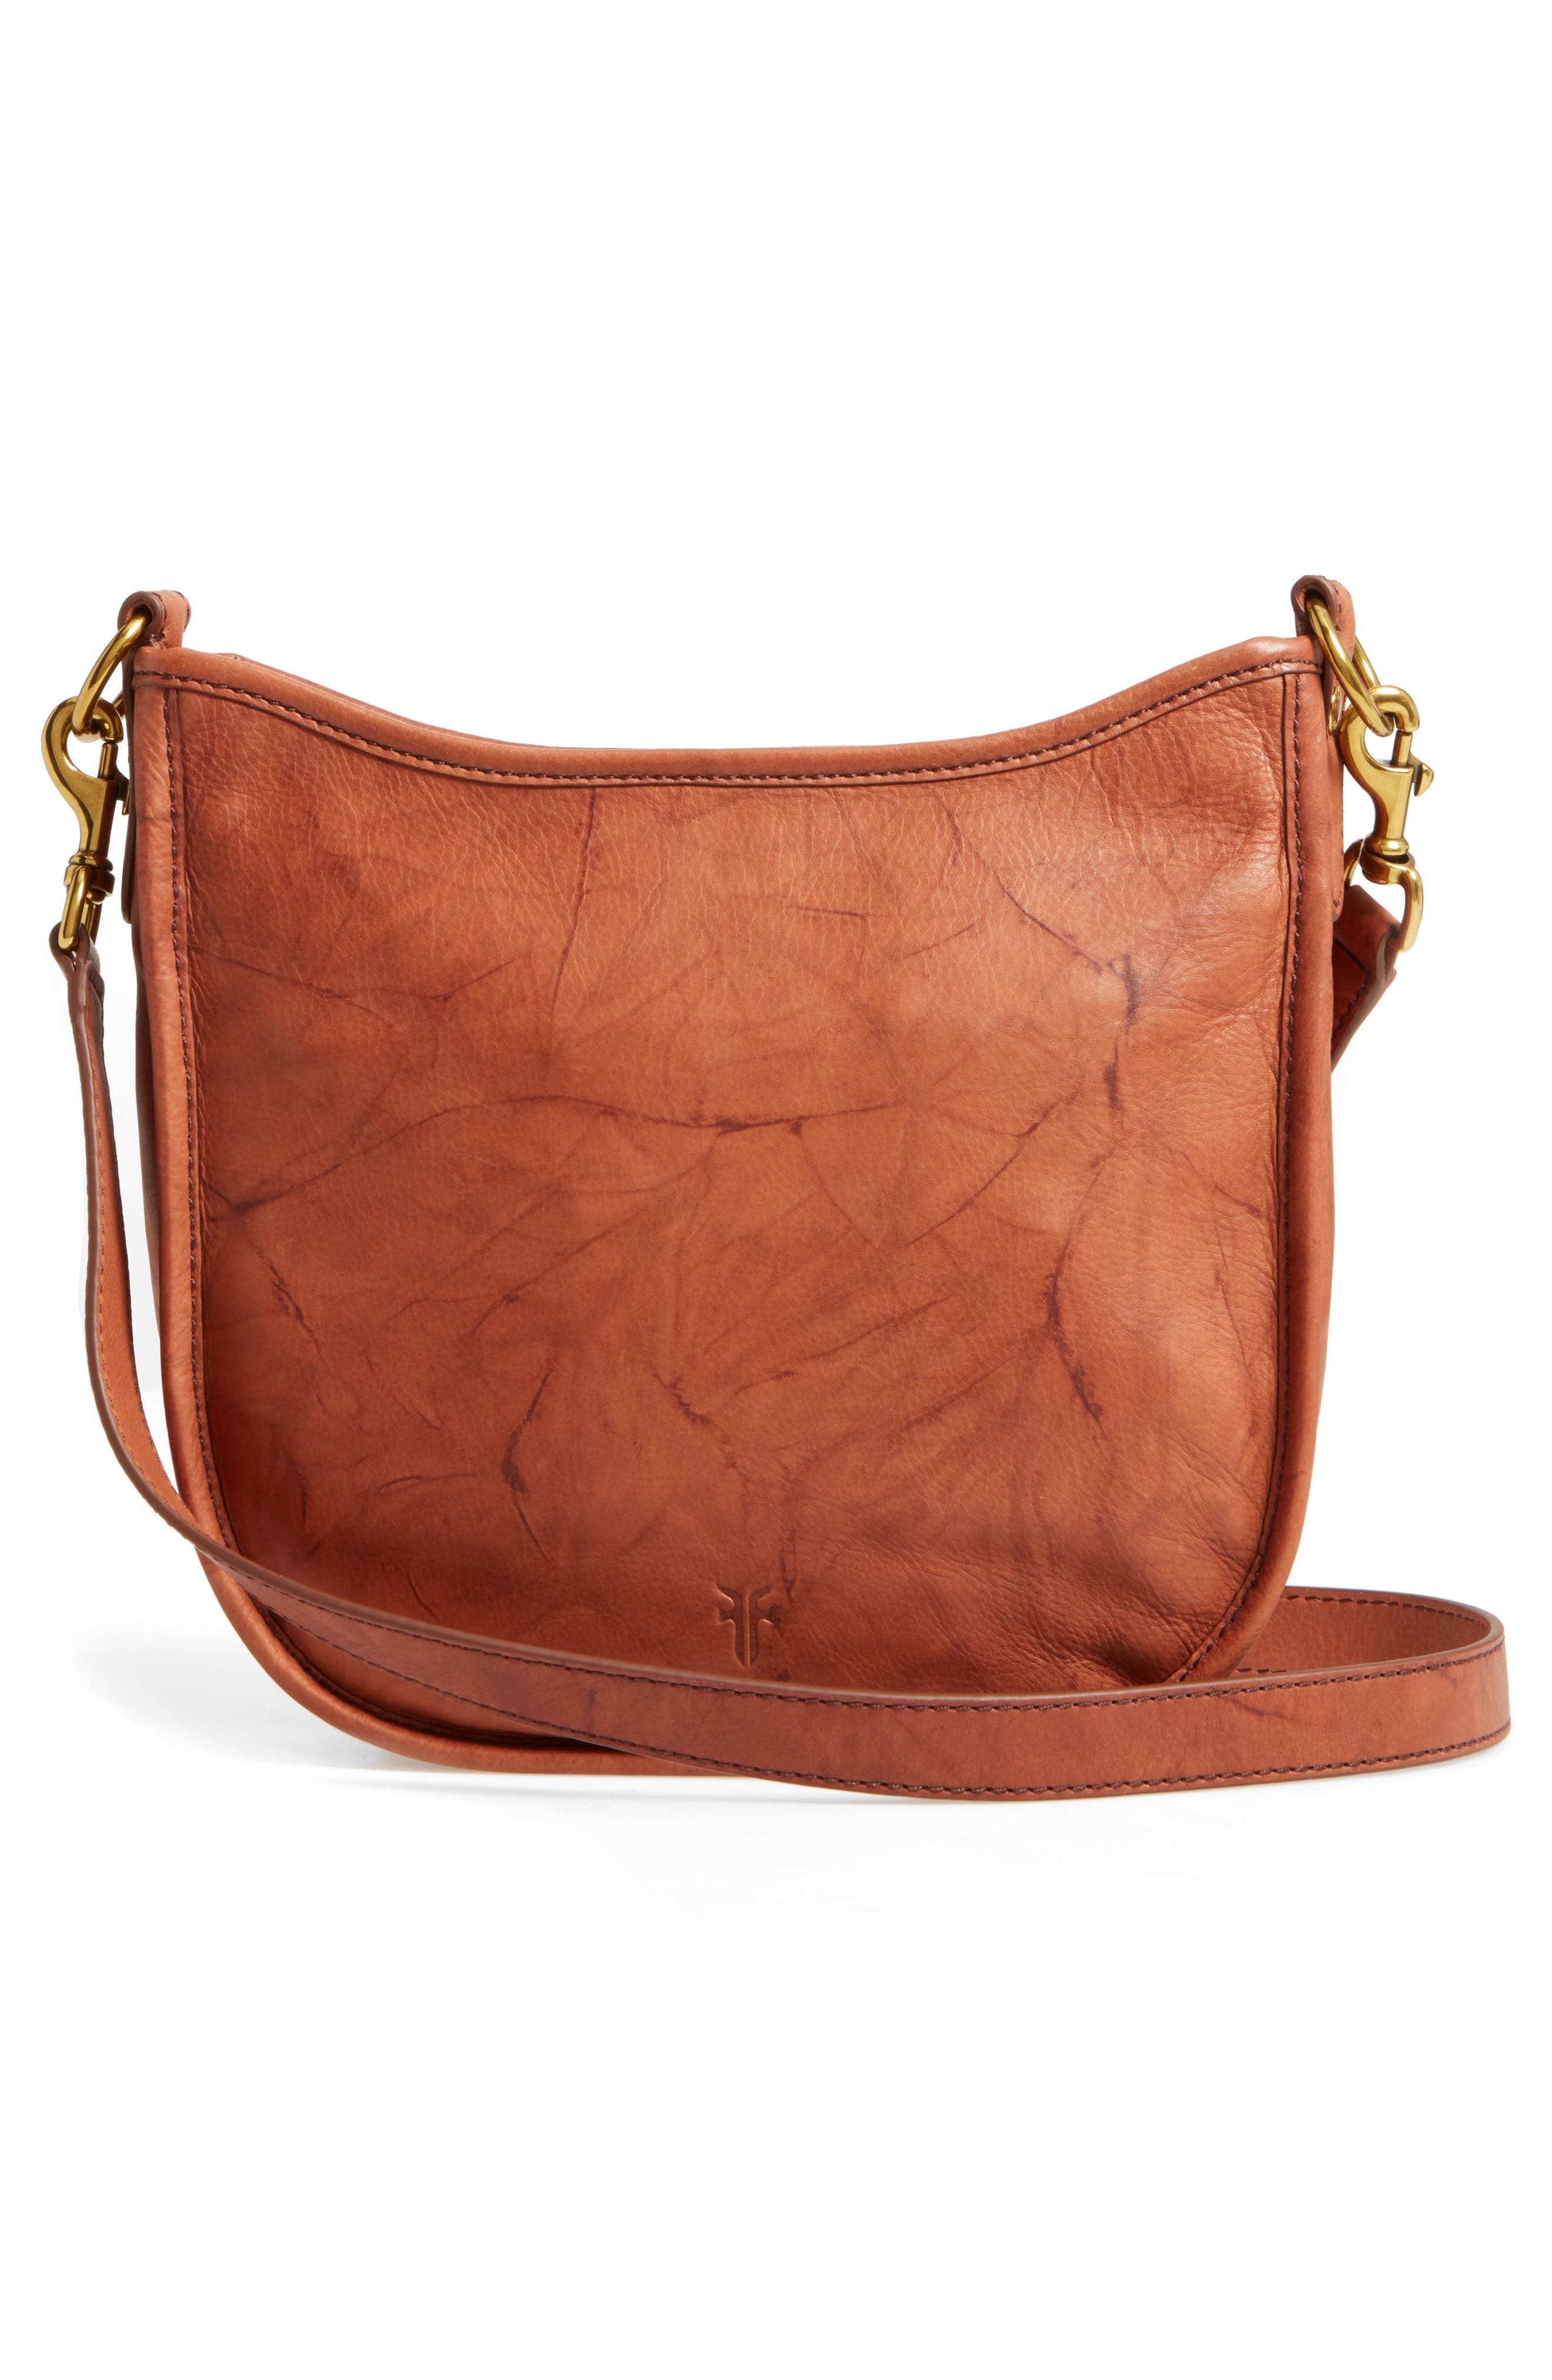 Campus Rivet Leather Crossbody Bag,                             Alternate thumbnail 2, color,                             Saddle